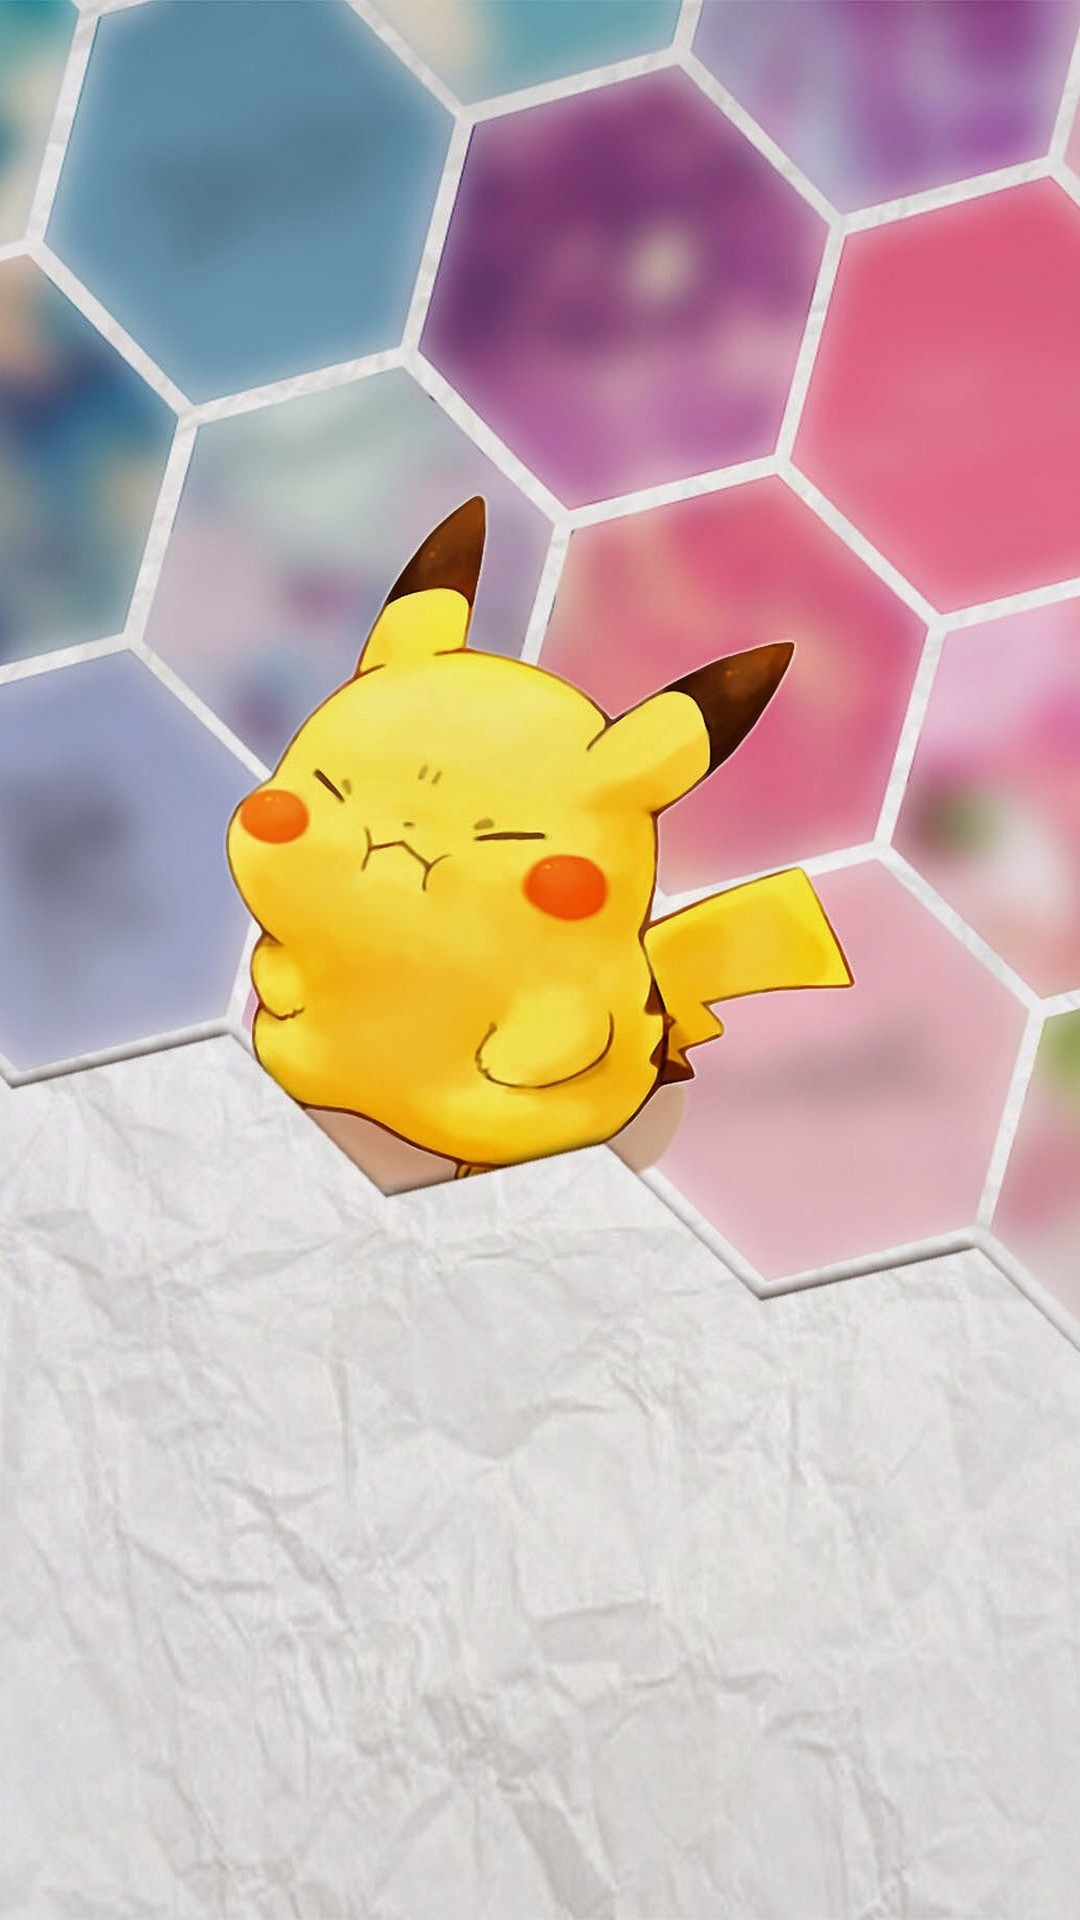 Tap image for more iPhone 6 Plus Pikachu wallpapers! Pikachu – @mobile9 |  Cute